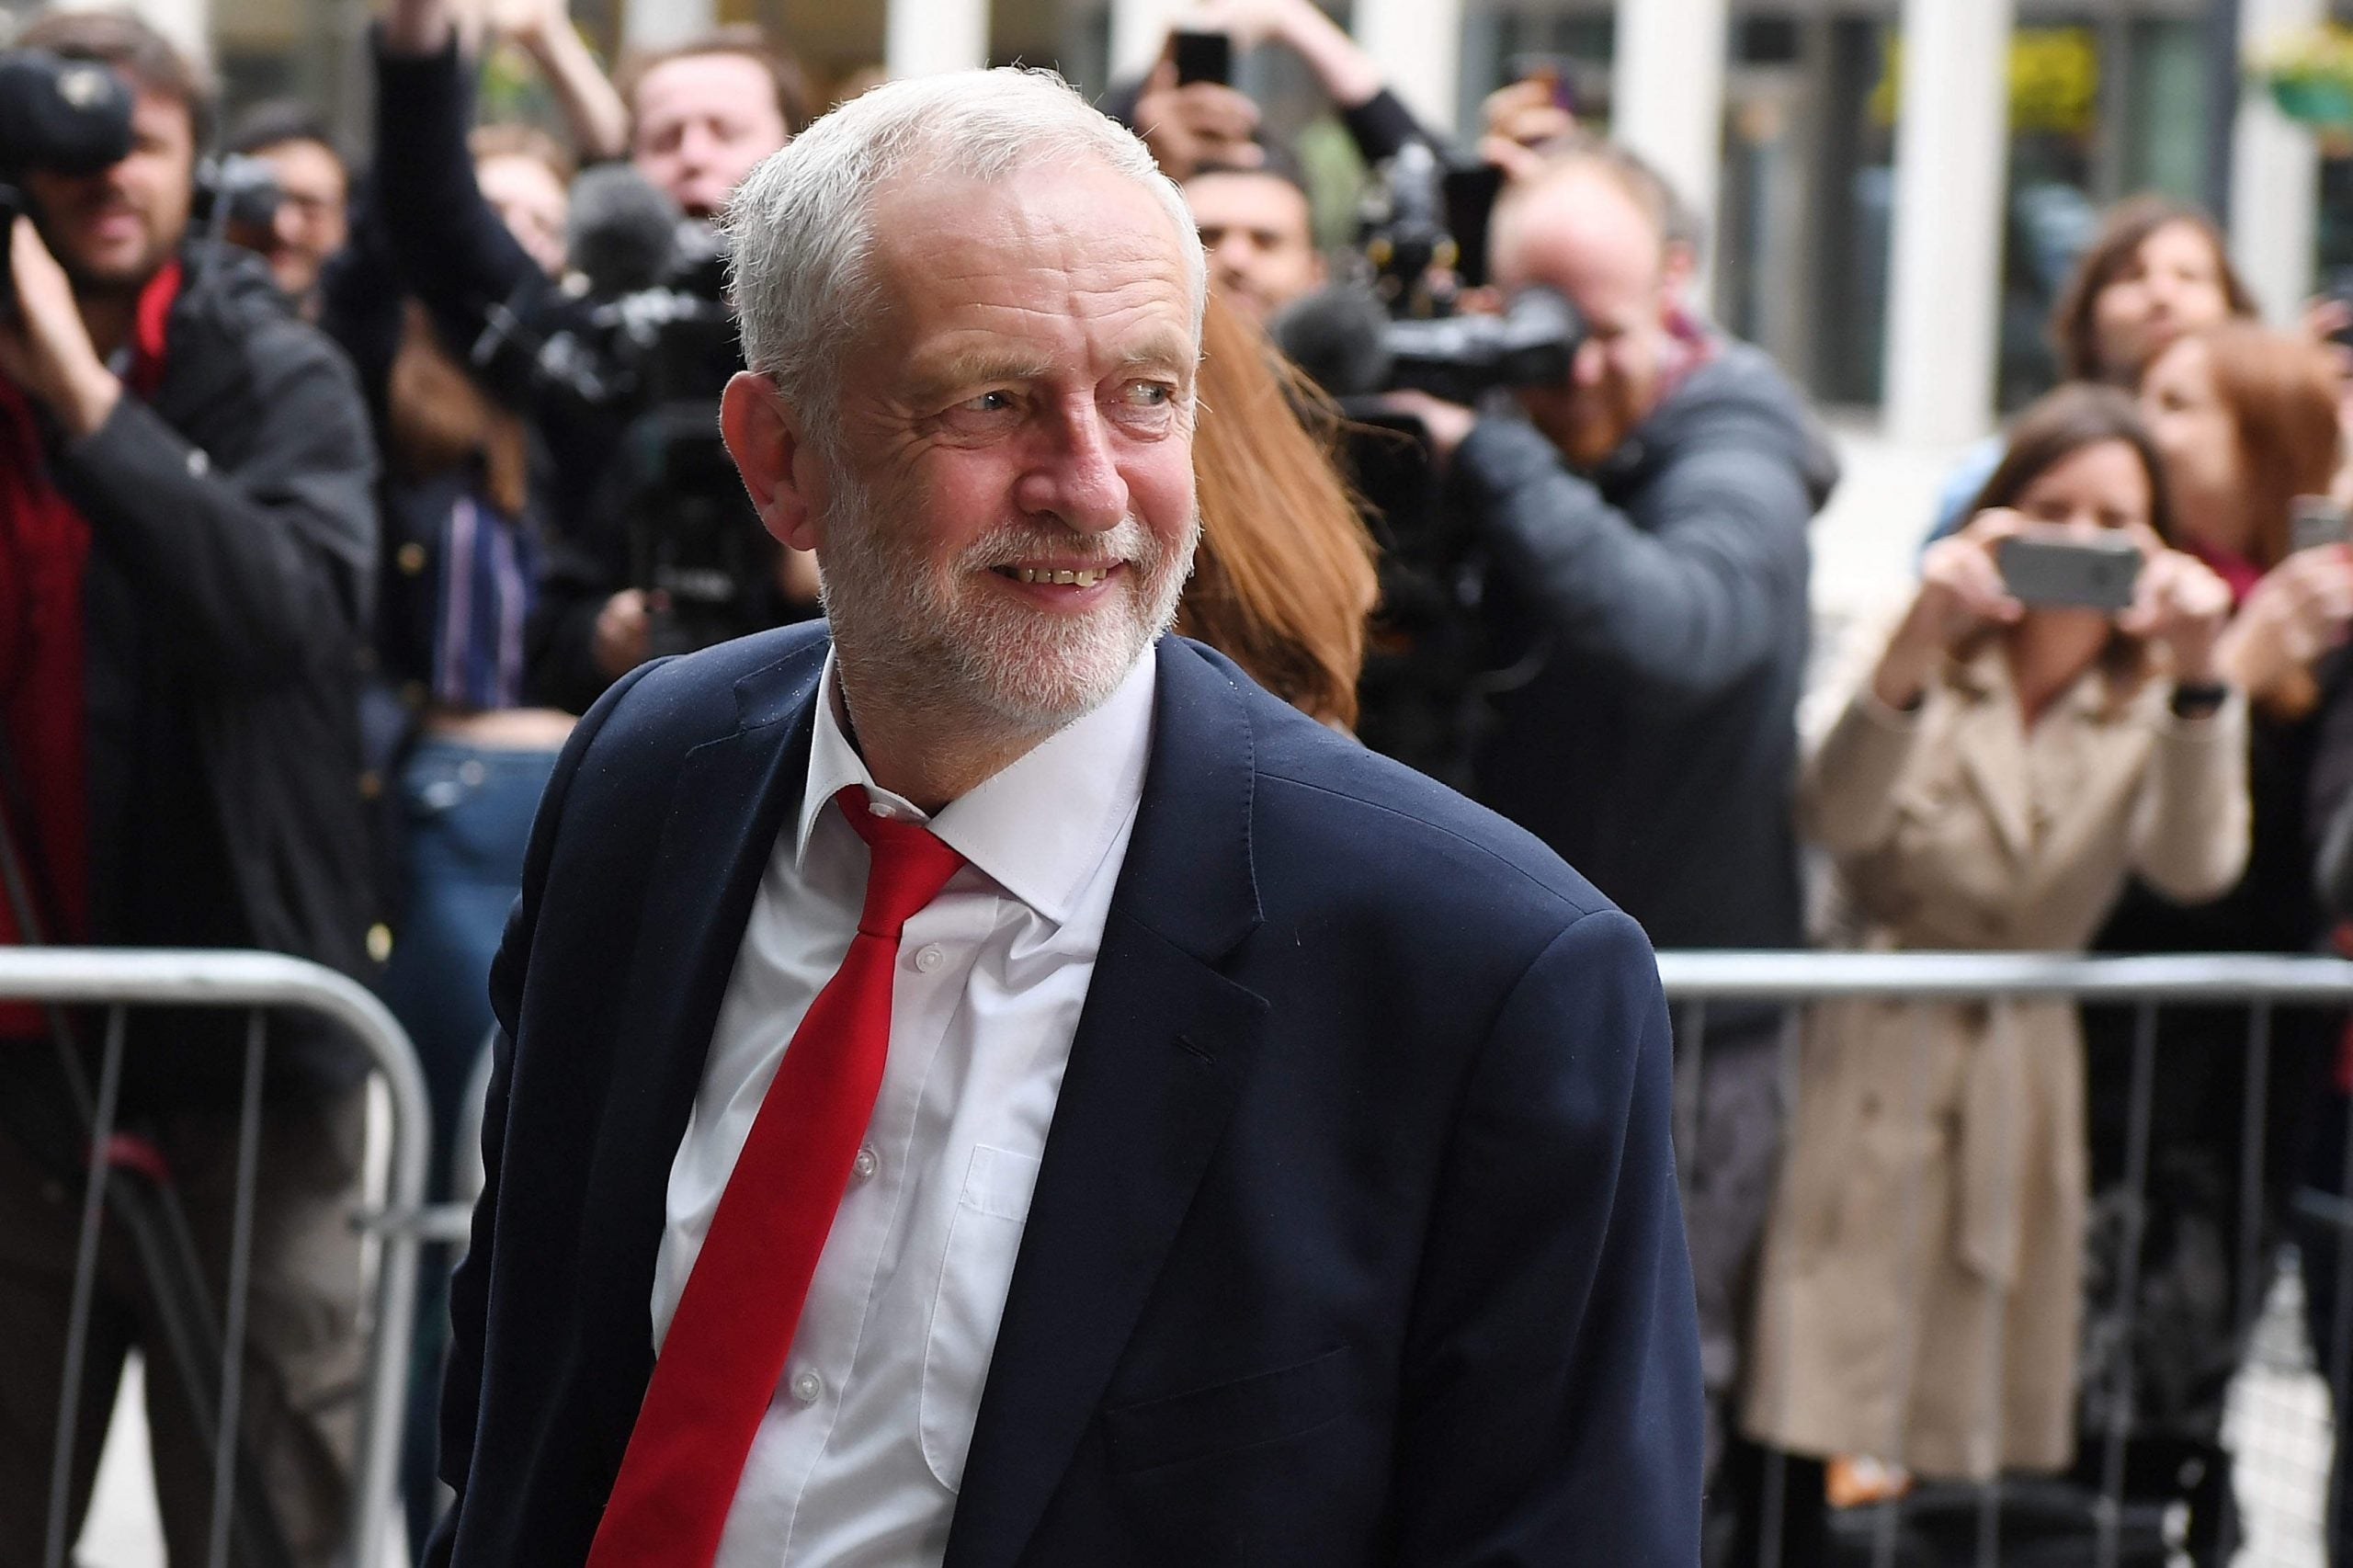 Labour has quietly shifted right on immigration - with troubling consequences